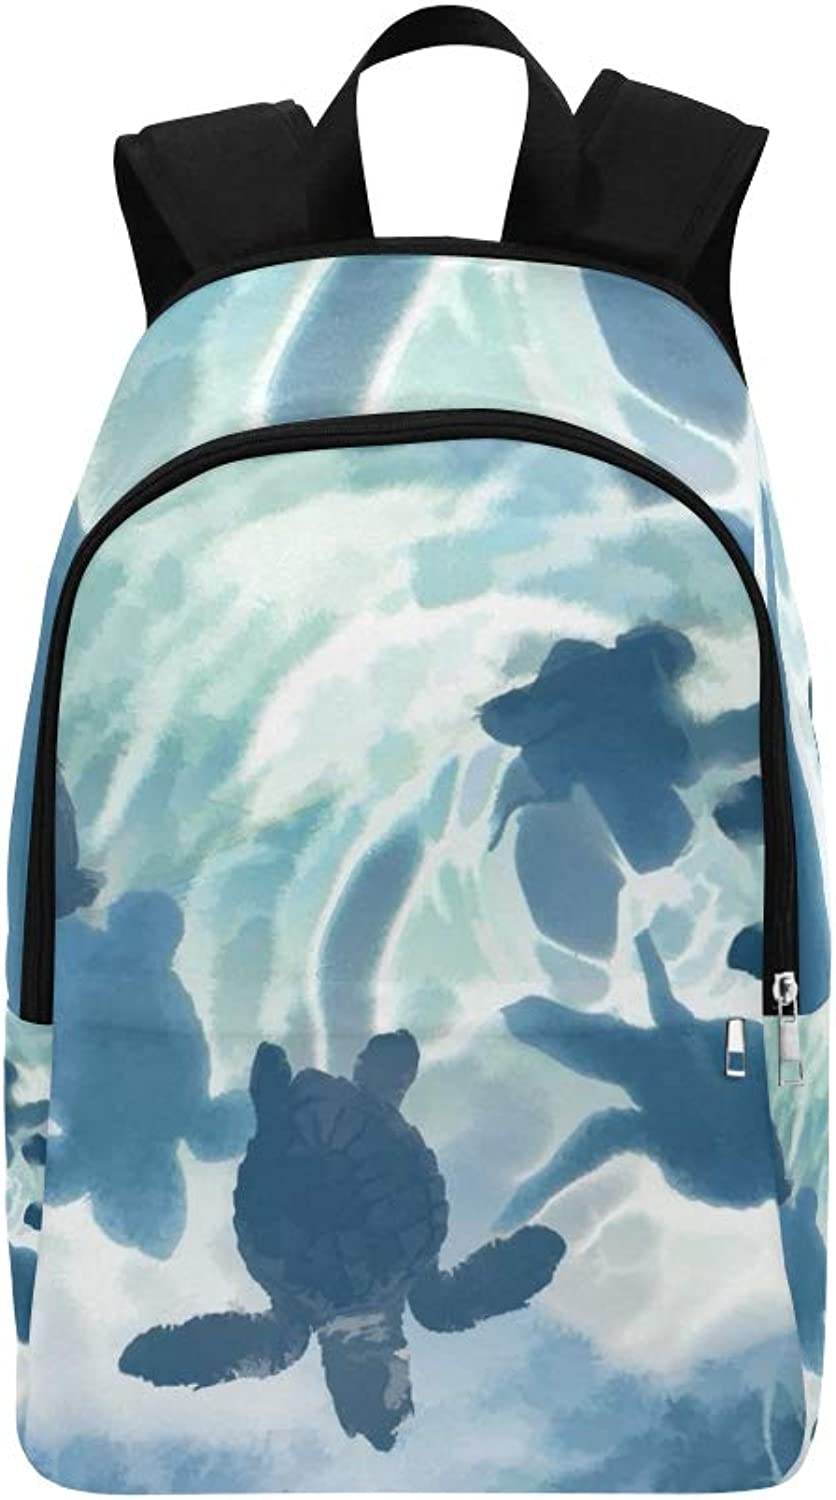 Digital Sea Turtles blueee Small Casual Daypack Travel Bag College School Backpack for Mens and Women